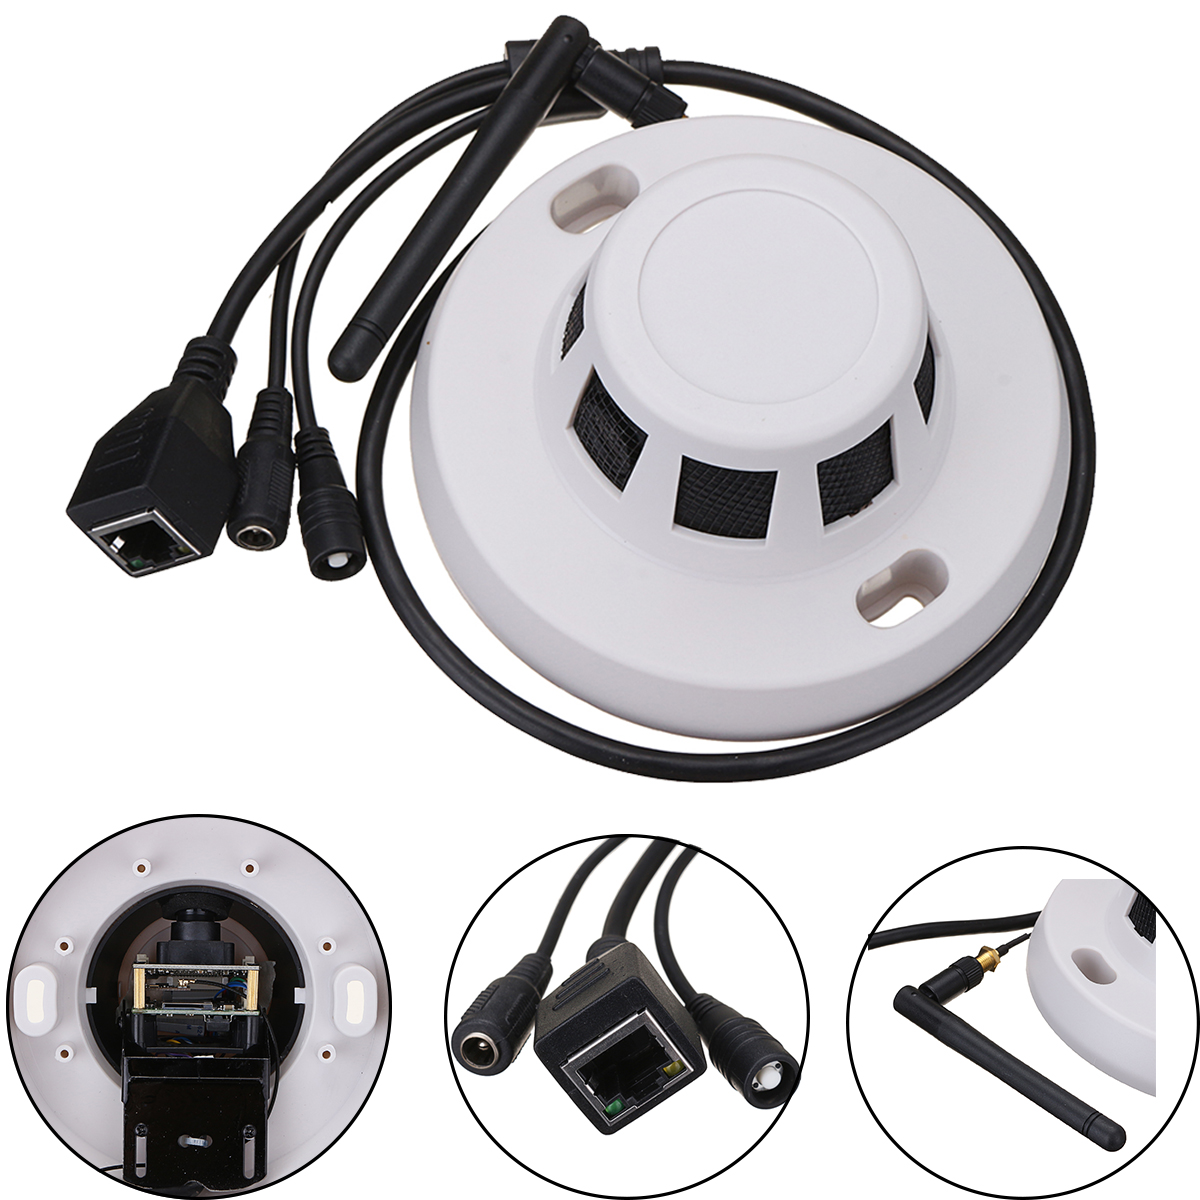 HD 1080p 3.6mm Smoke Detector Hidden WiFi Camera Video Audio Motion Detection